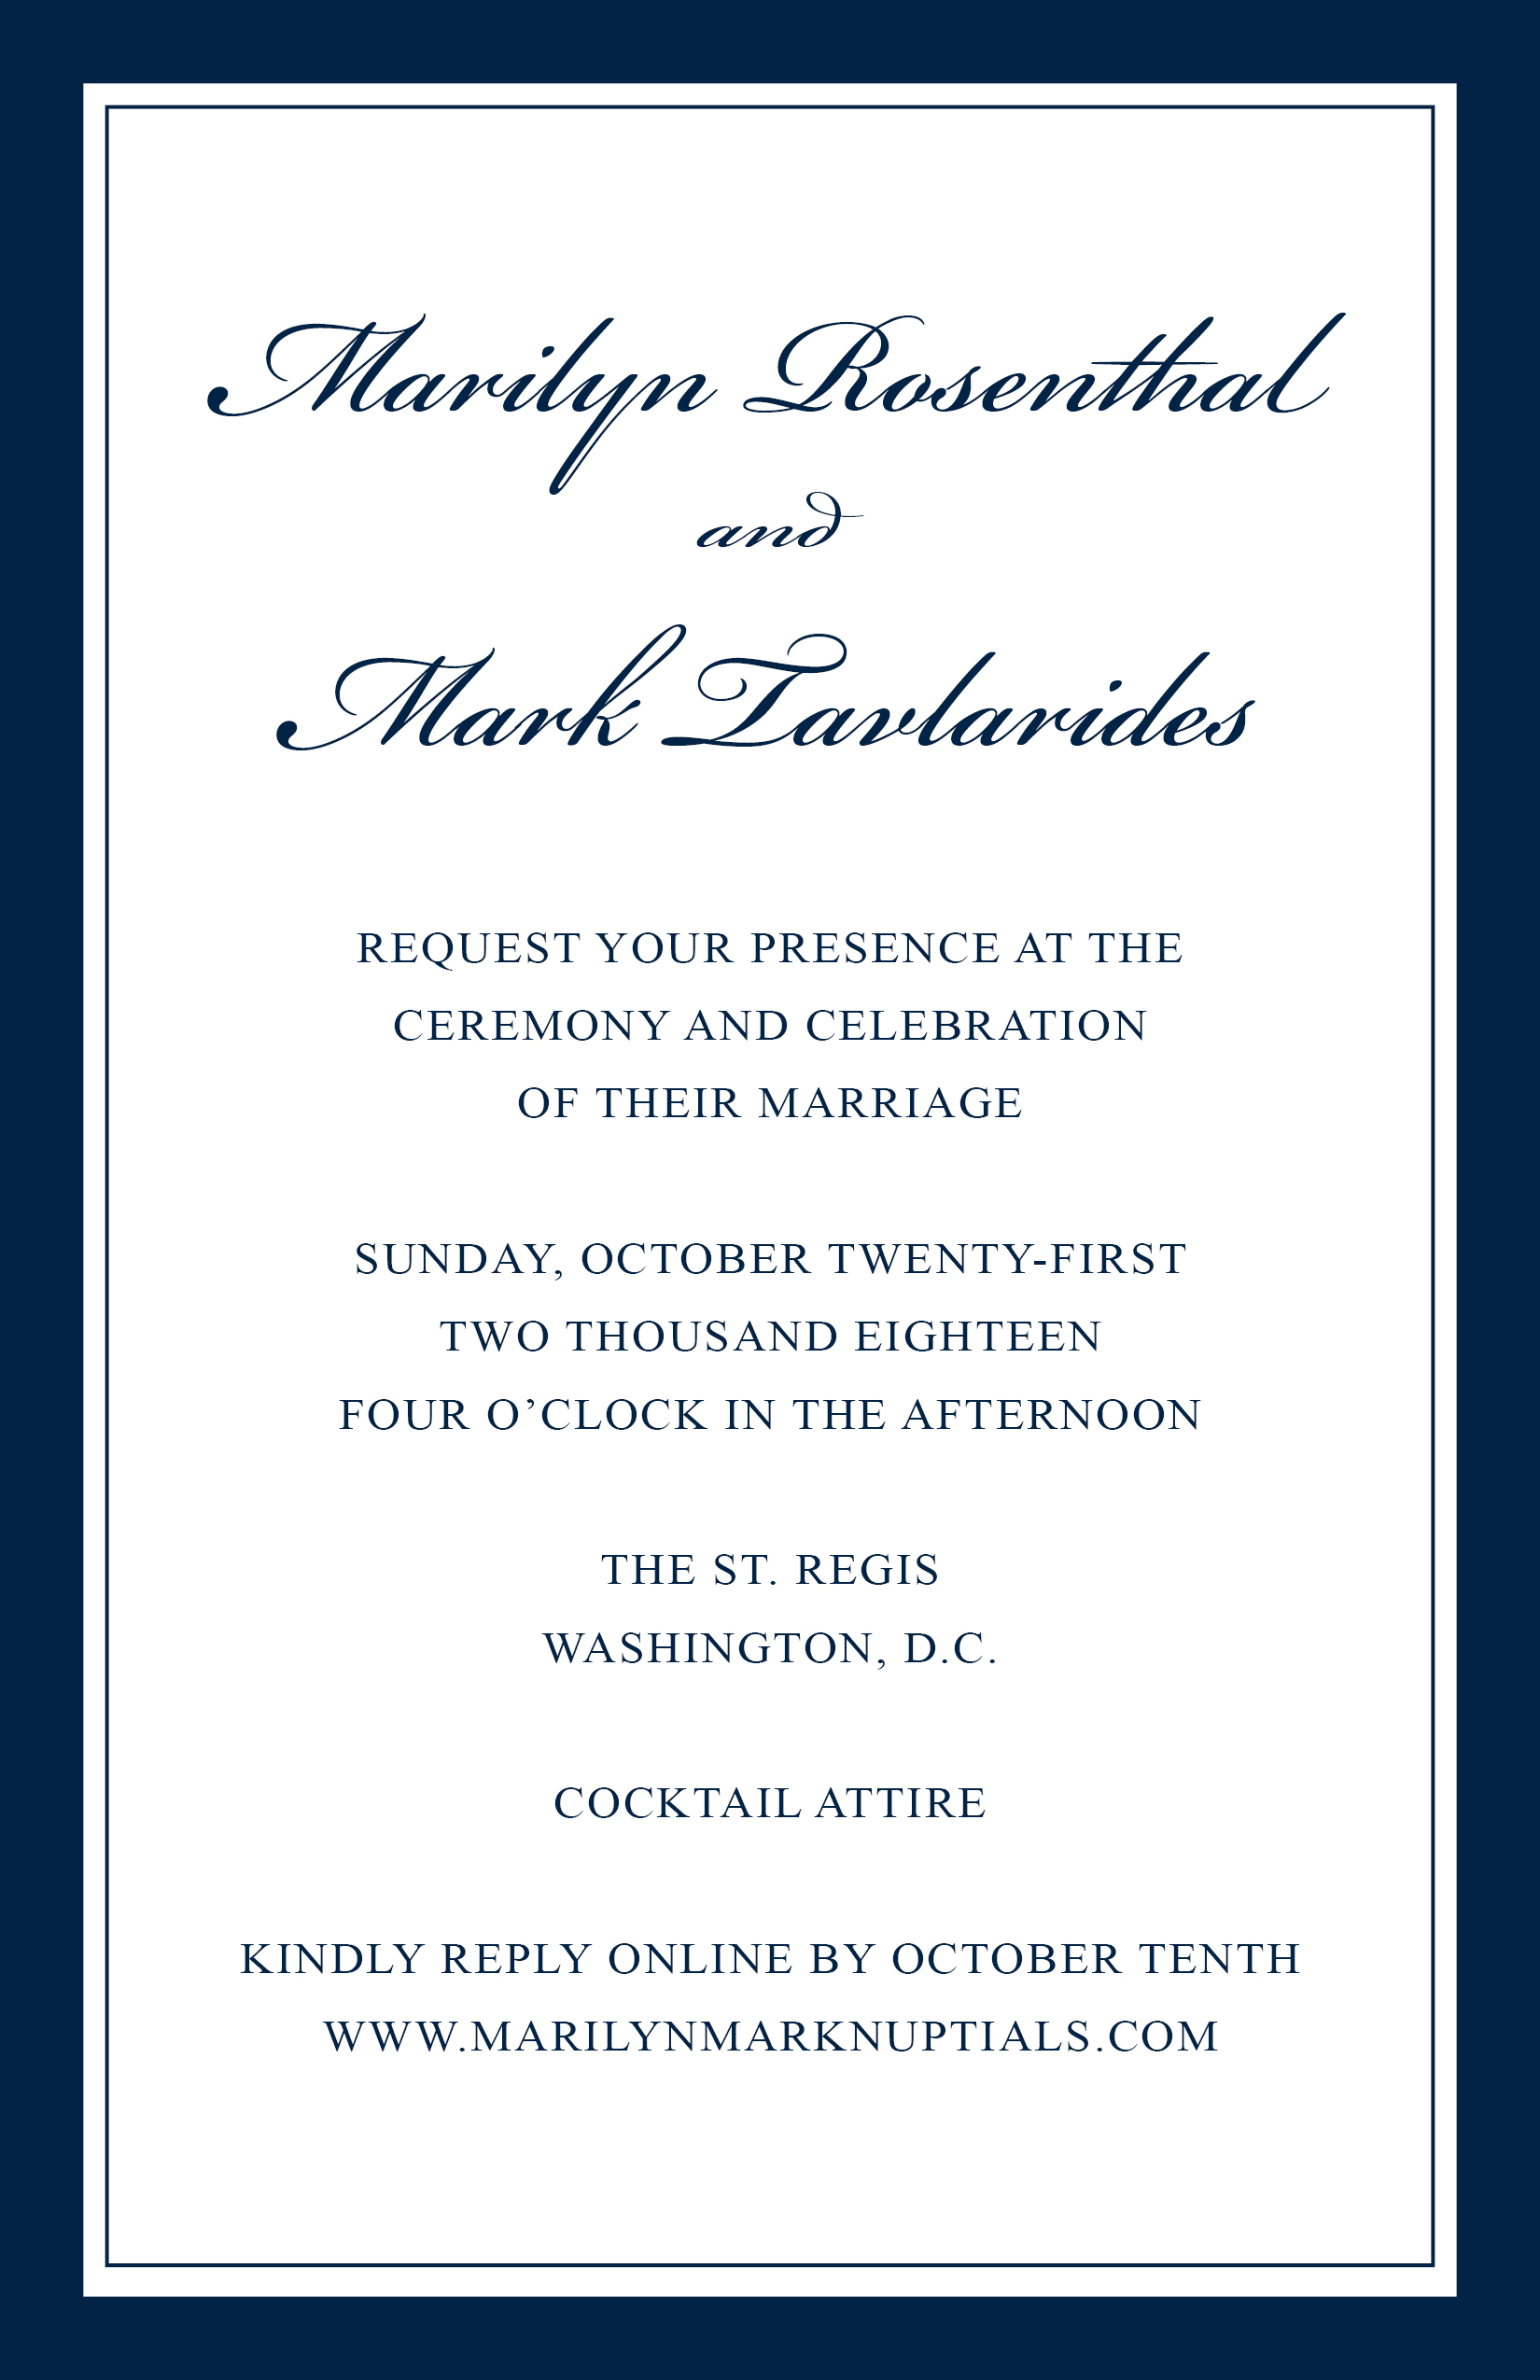 Invitation - Wedding Marilyn Rosenthal and Mark Tavlarides 102118 FINAL.jpg